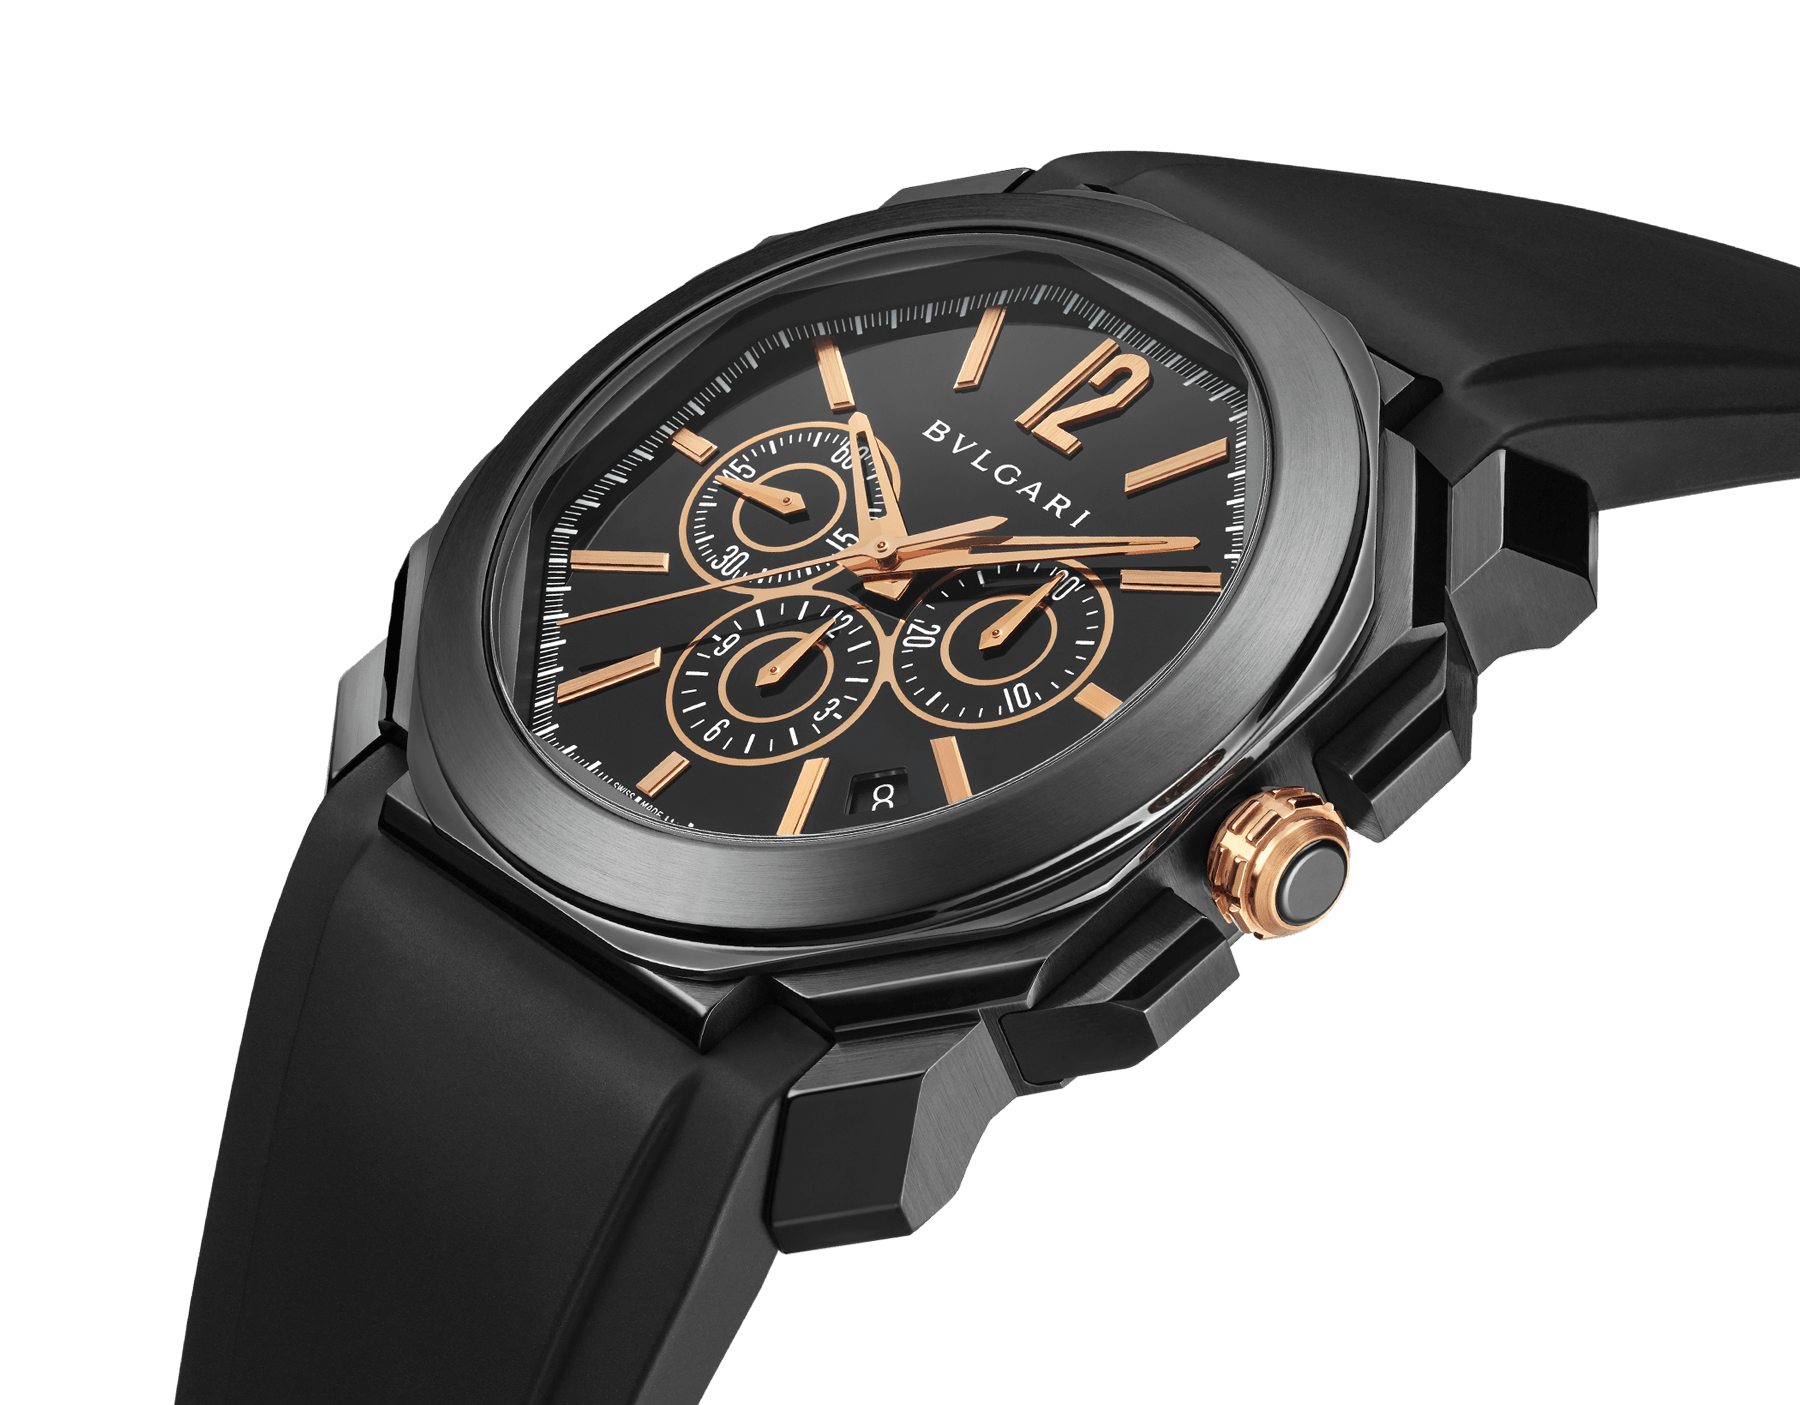 Octo watch with mechanical manufacture movement, high-frequency chronograph, automatic winding and date, stainless steel case treated with black Diamond Like Carbon, black lacquered dial and black rubber bracelet. 102630 image 2